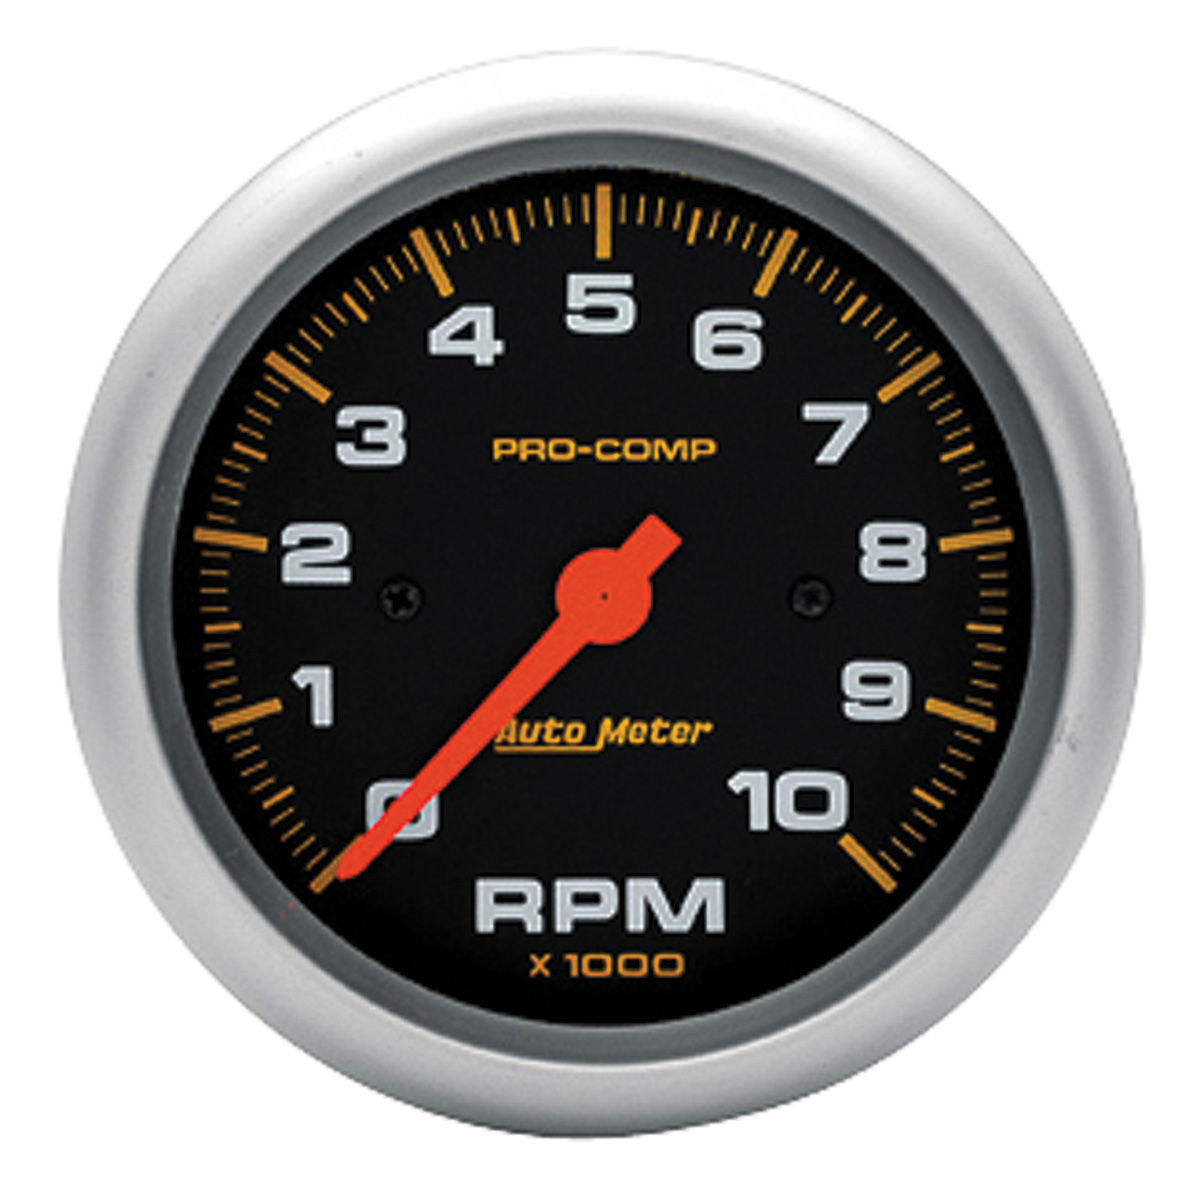 Photo of Tachometer, Pro-Comp Series (10,000 RPM)